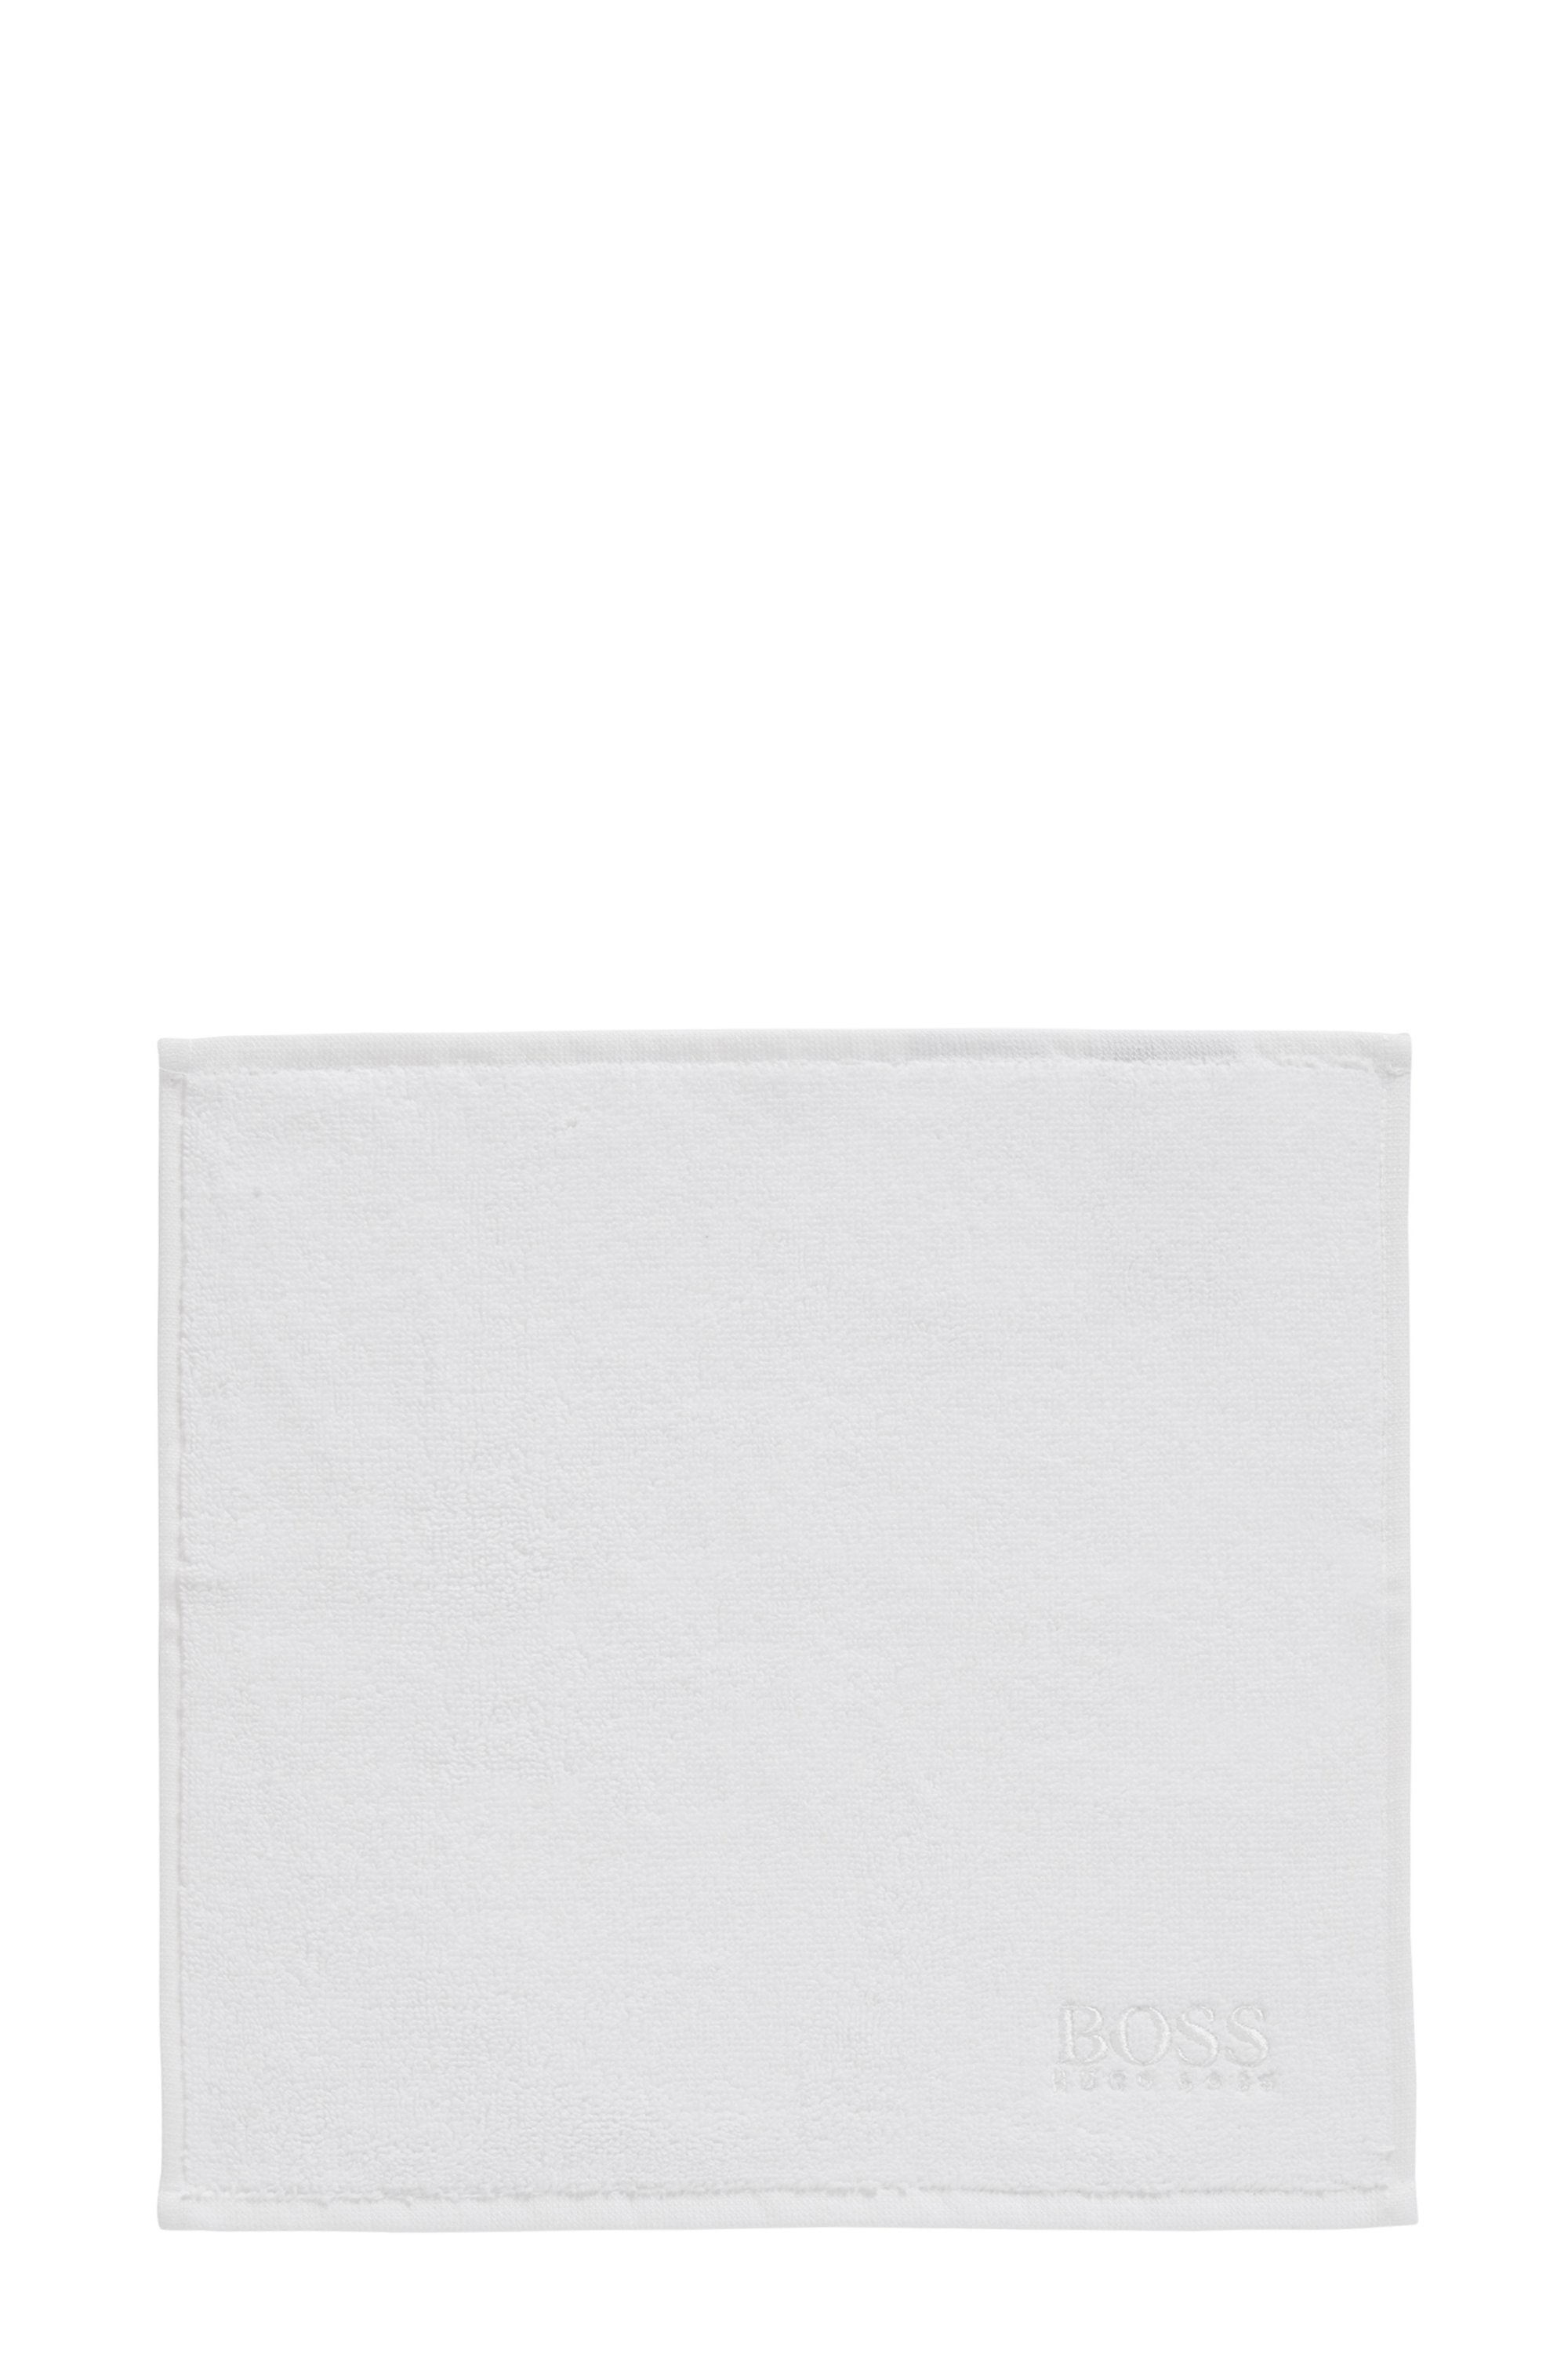 Finest Egyptian cotton face cloth with logo embroidery